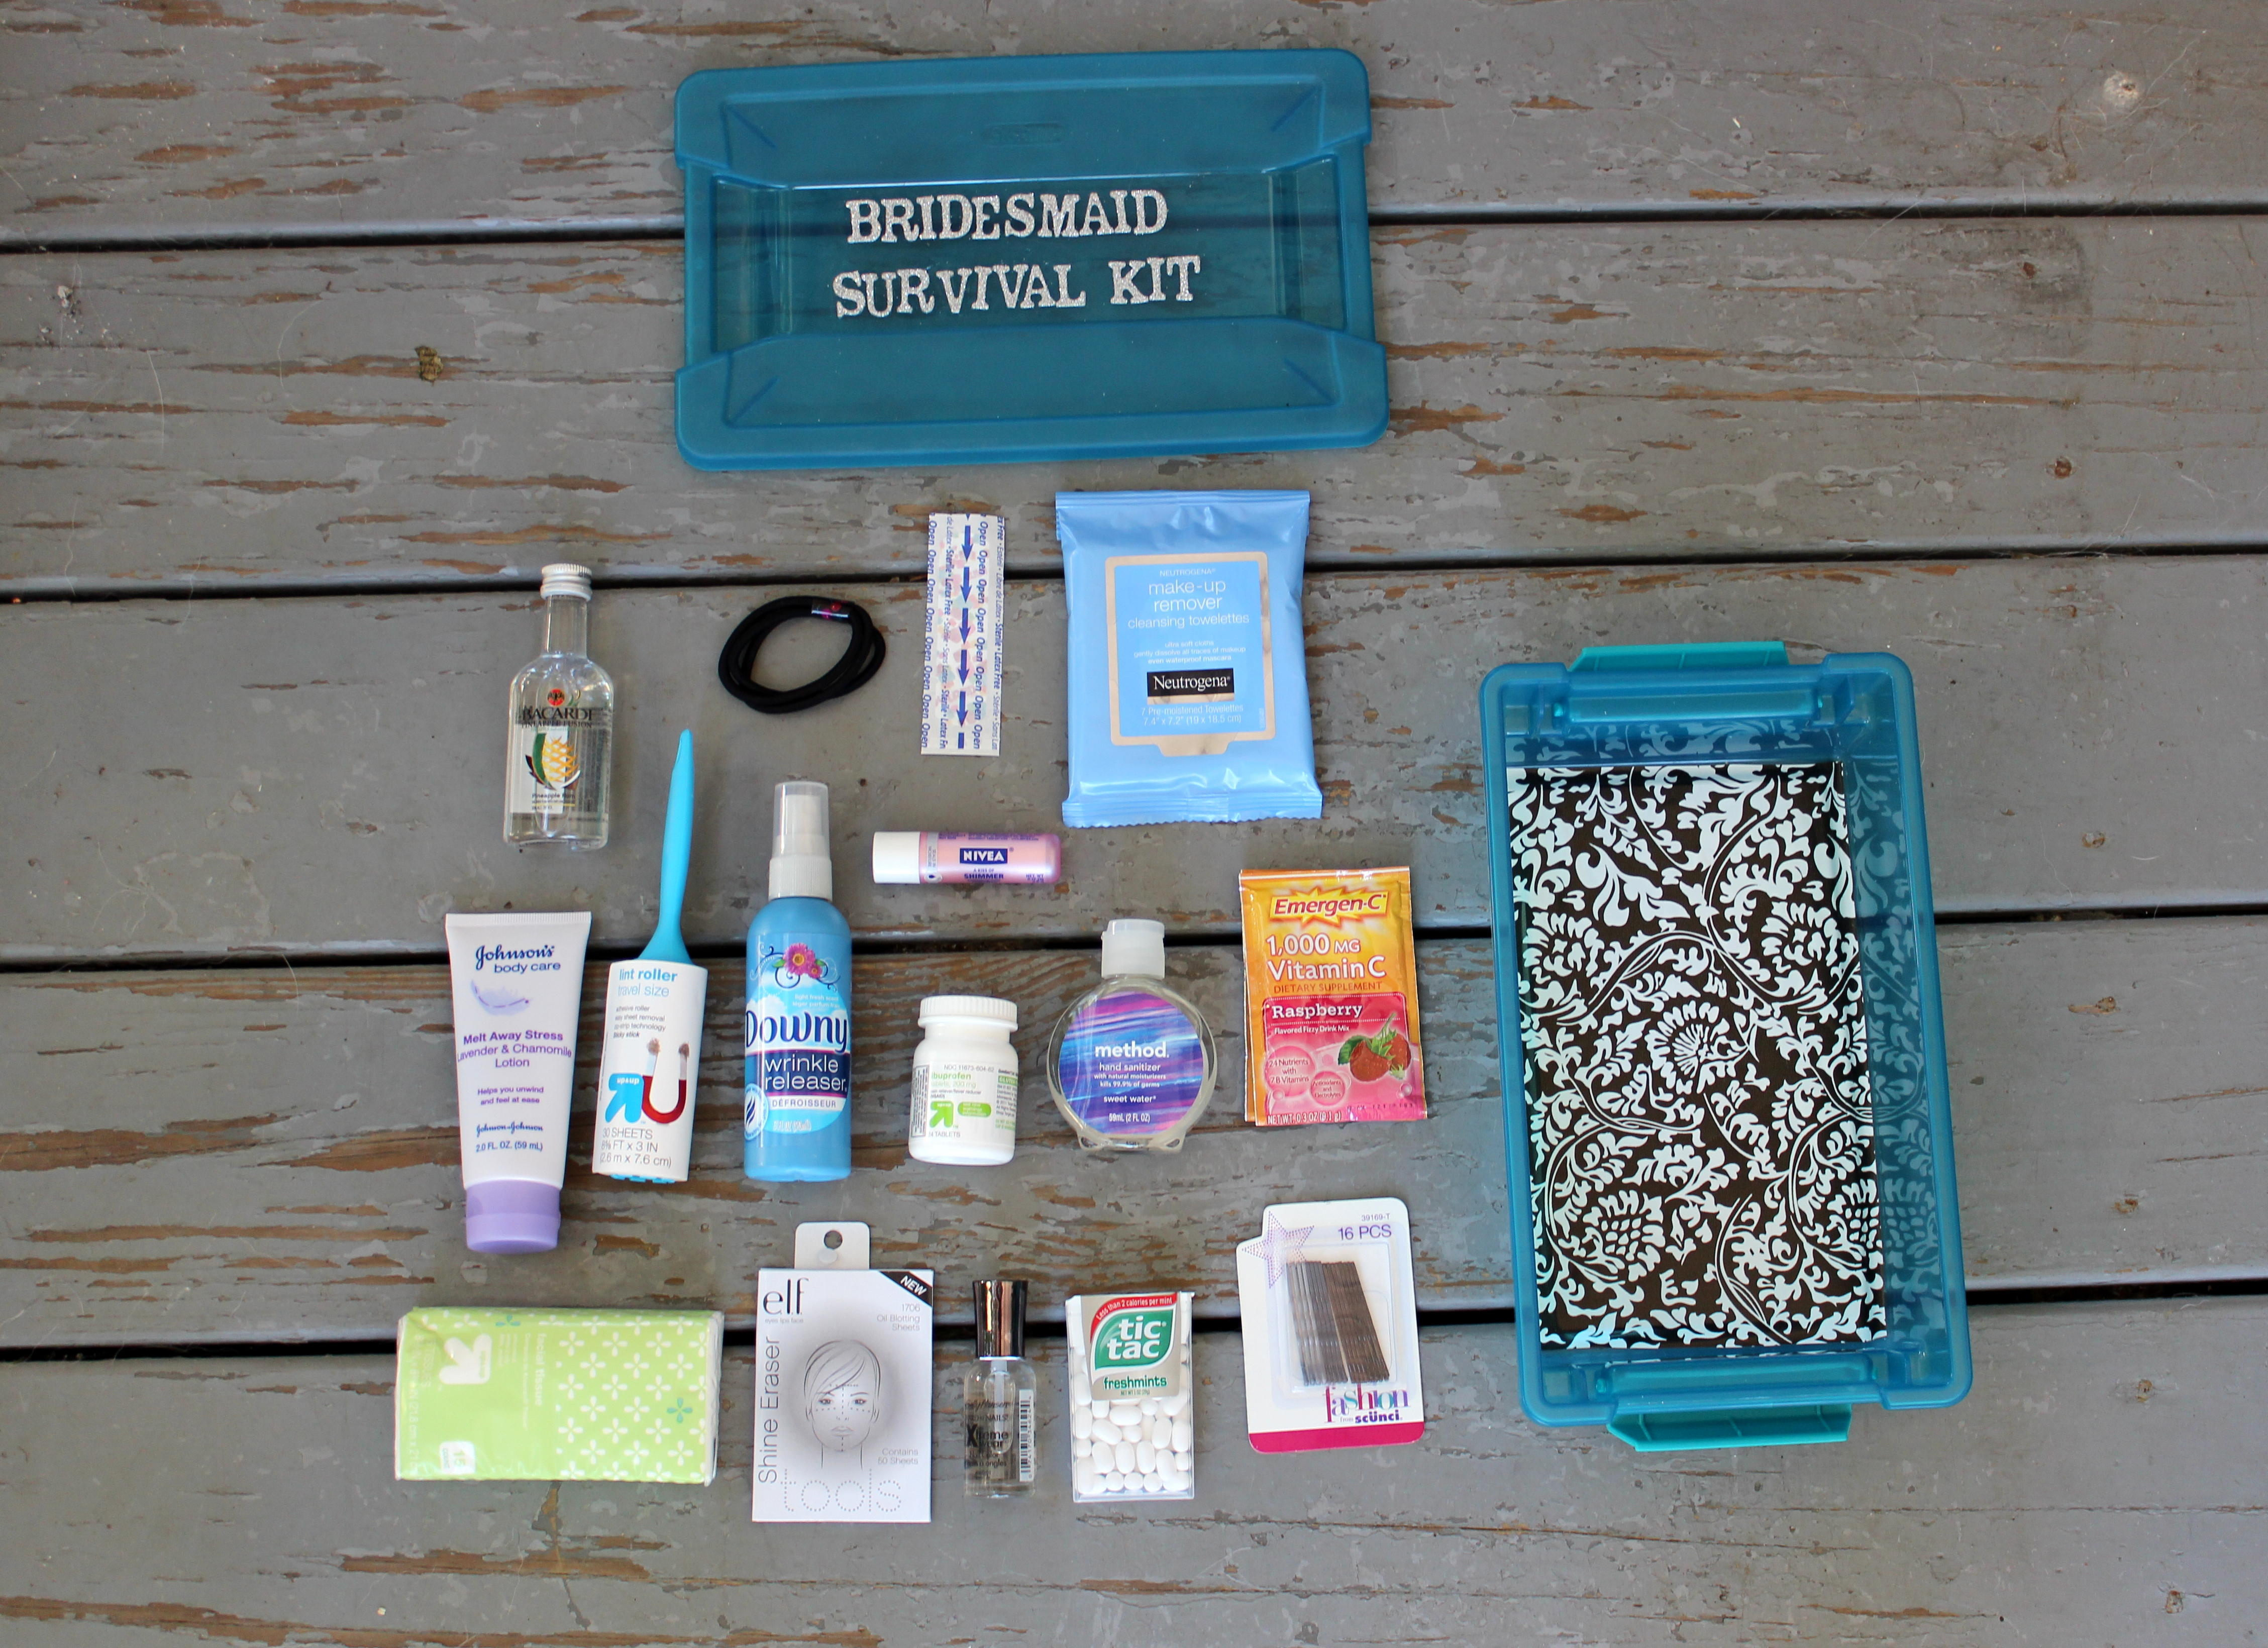 Buy Survival bridesmaid kit picture trends